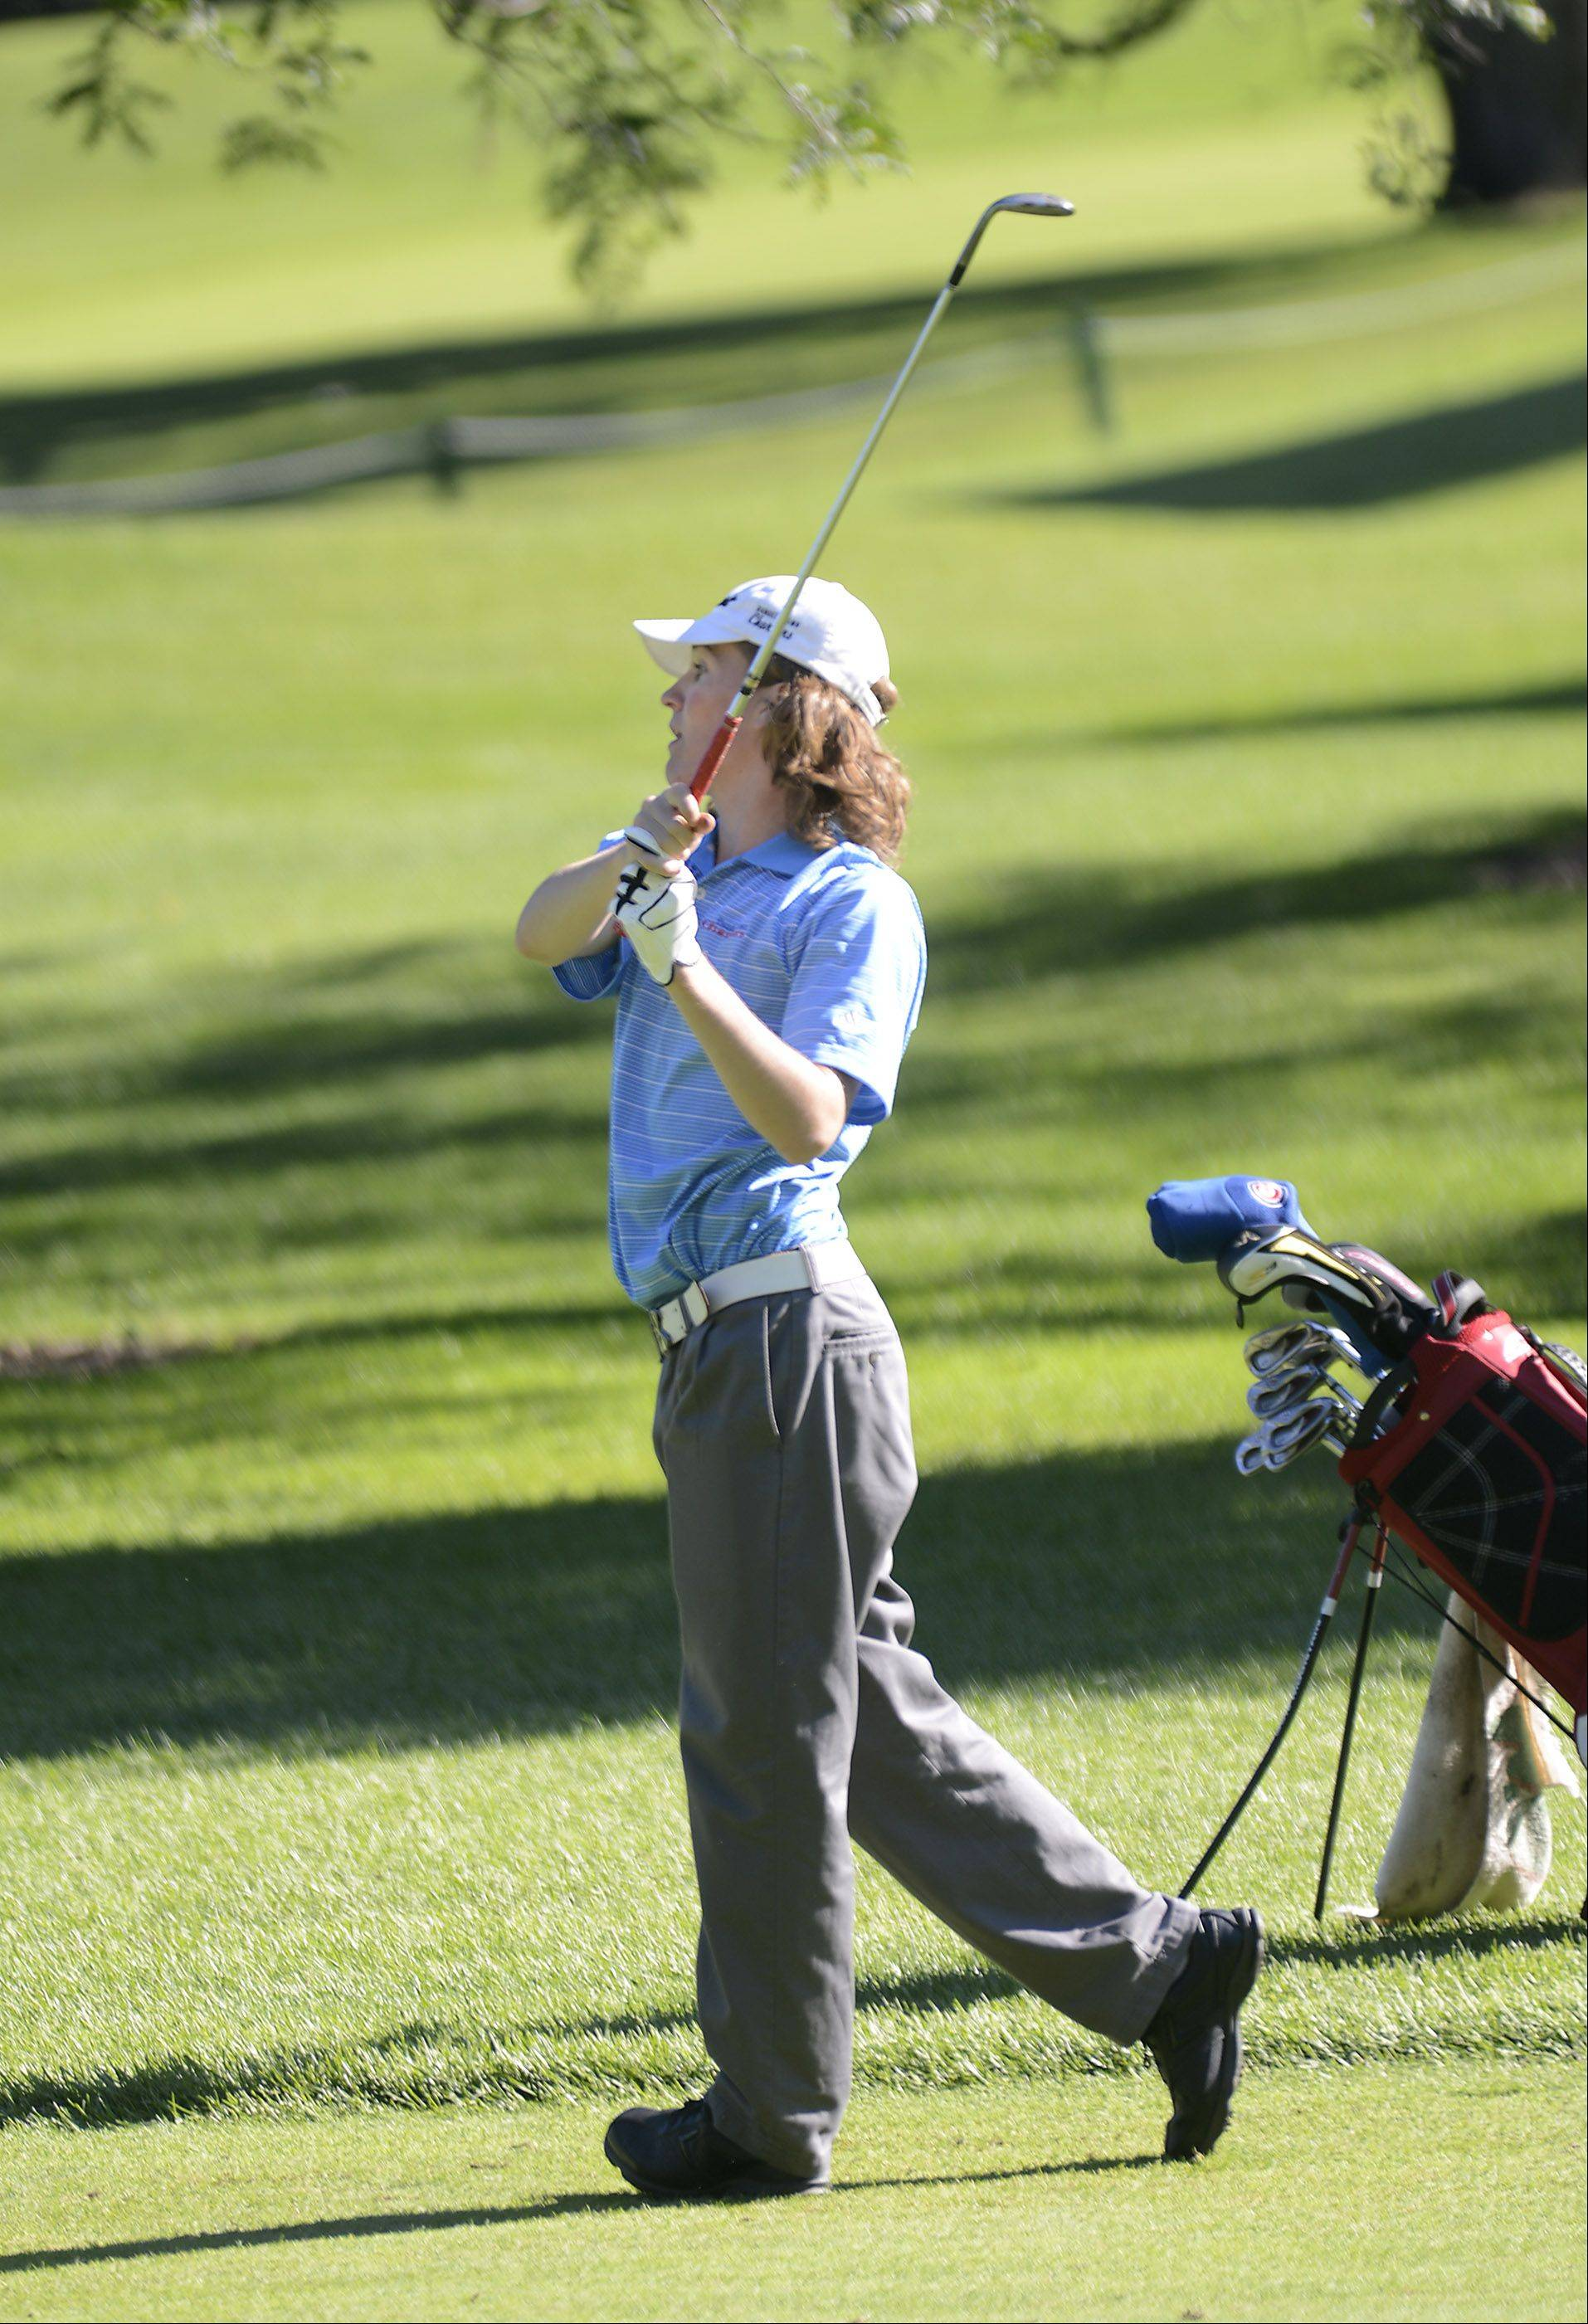 Dundee-Crown's Shane Lubecker hits from the fairway Monday at the Elgin boys golf invitational at Bartlett Golf Club.